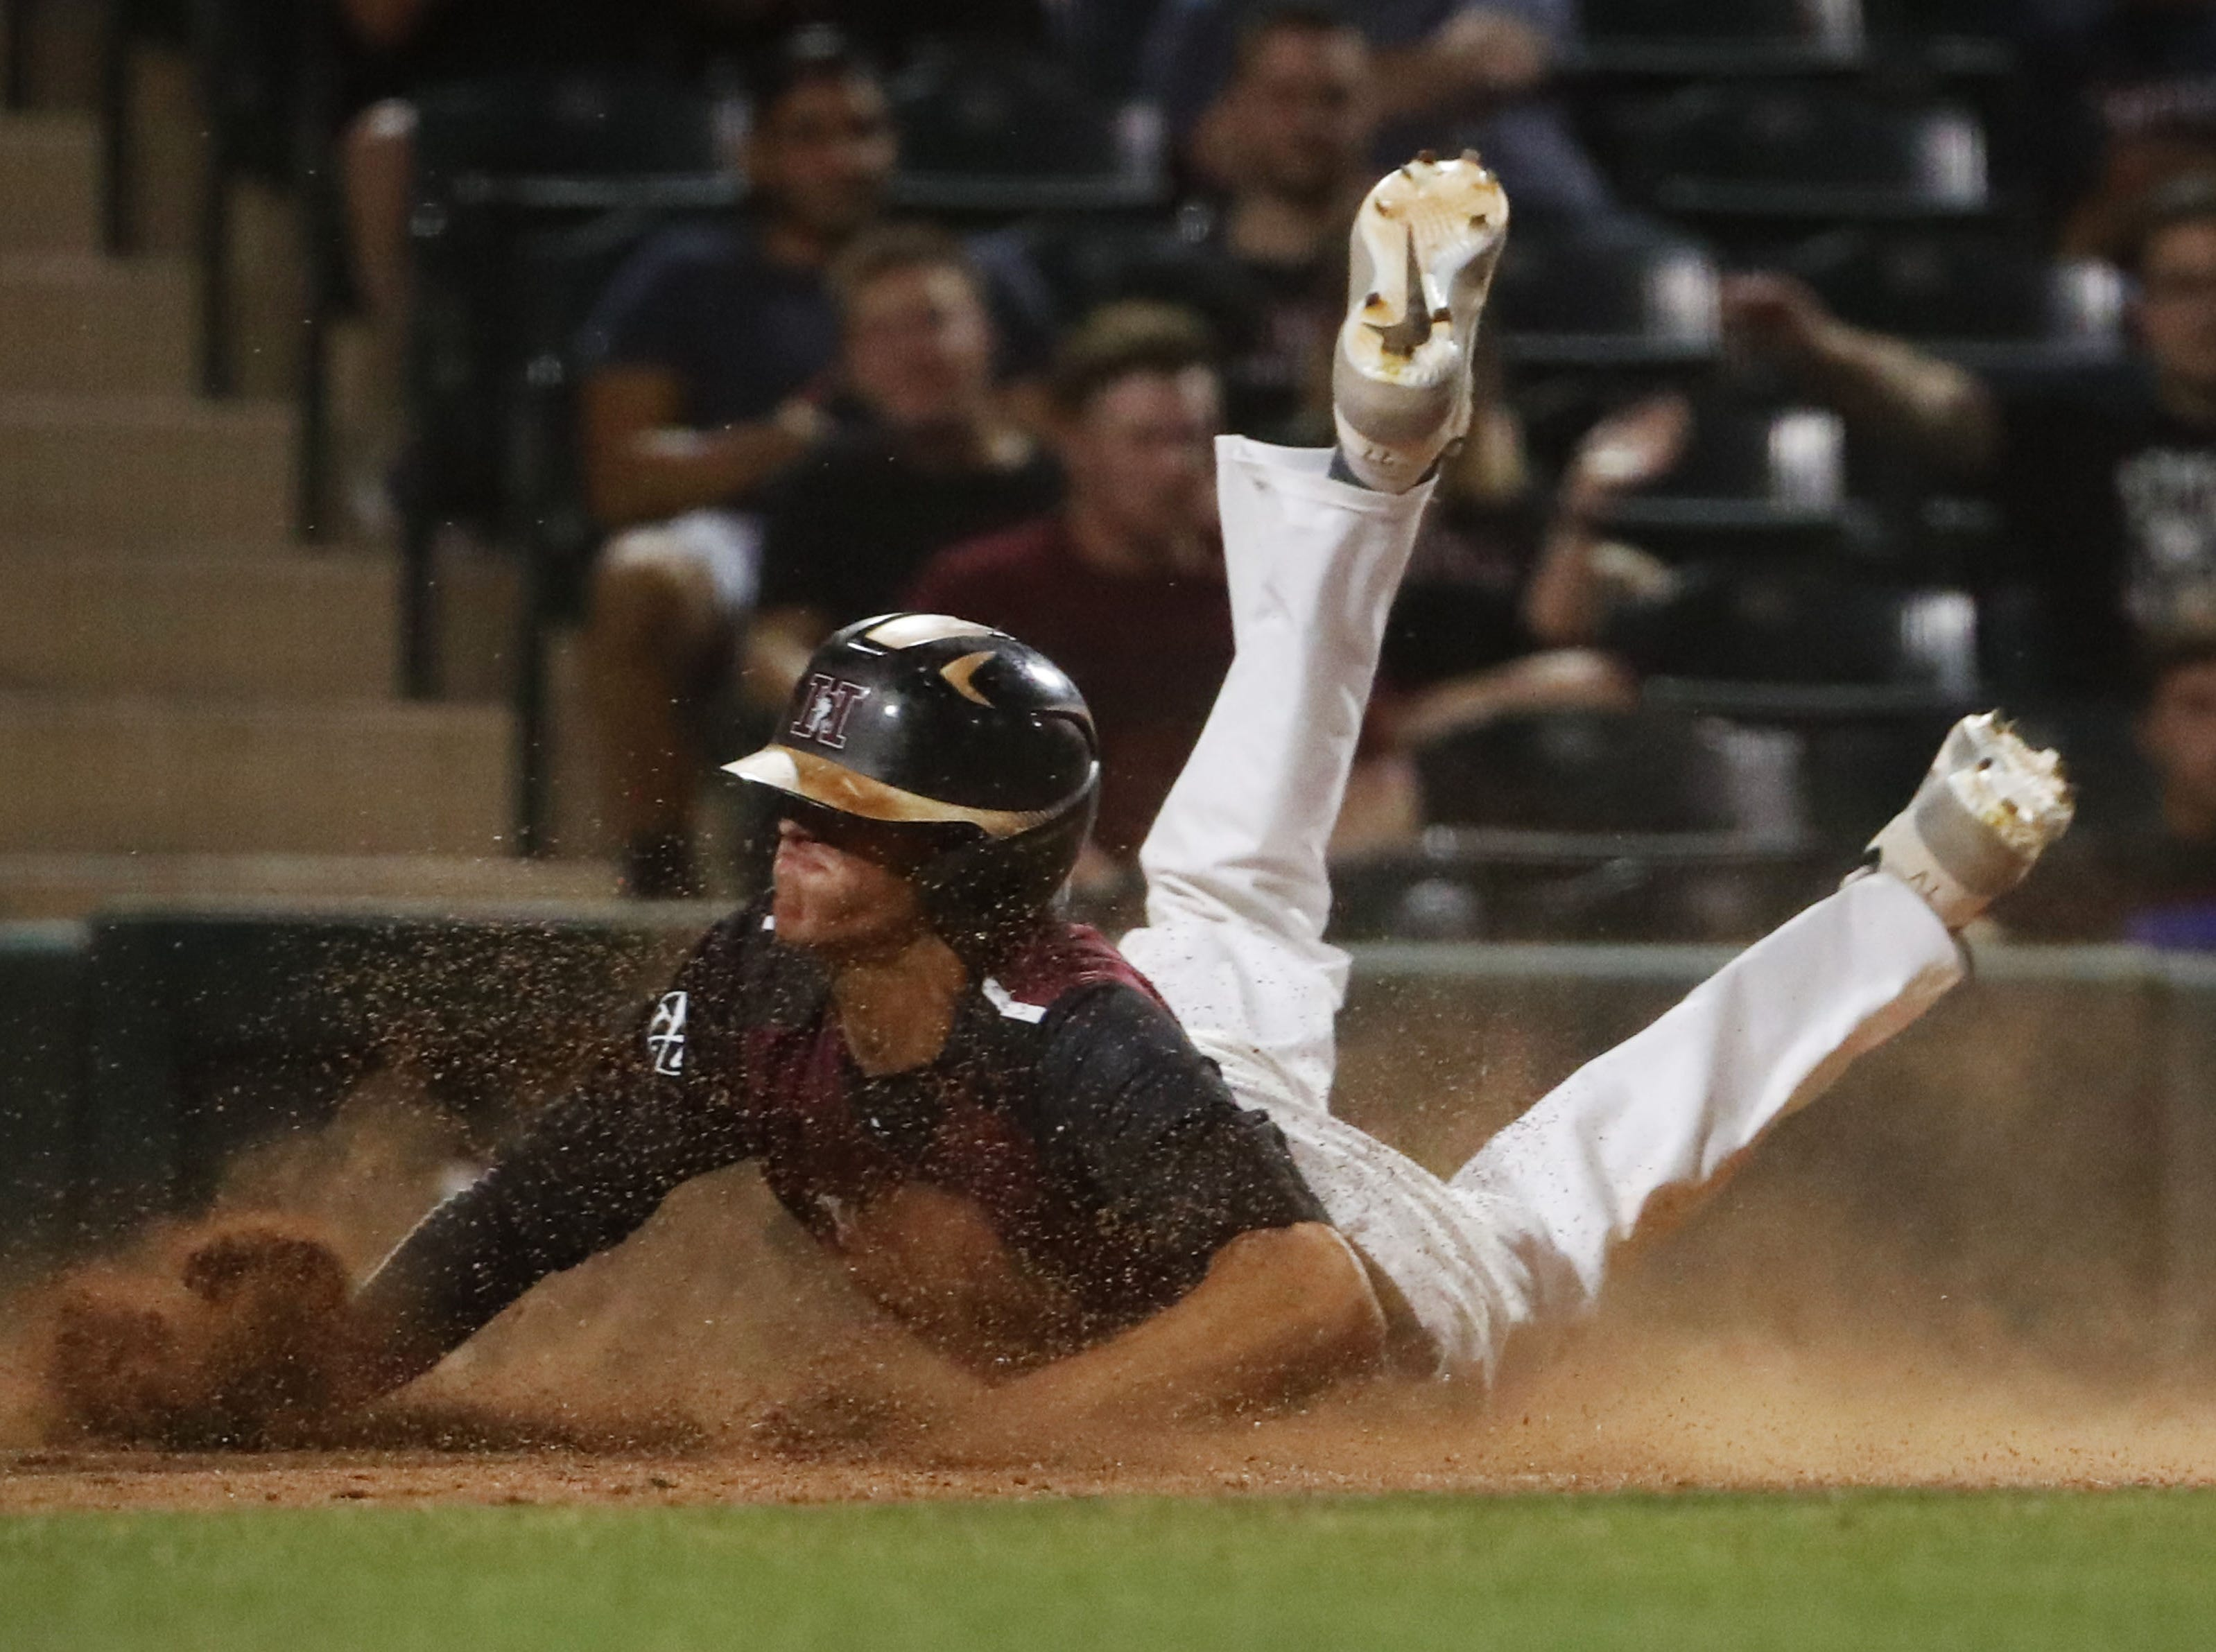 Hamilton right fielder JD Mclaughlin (23) scores against Corona del Sol during the 6A State Baseball Championship in Tempe, Ariz. May 14, 2019.